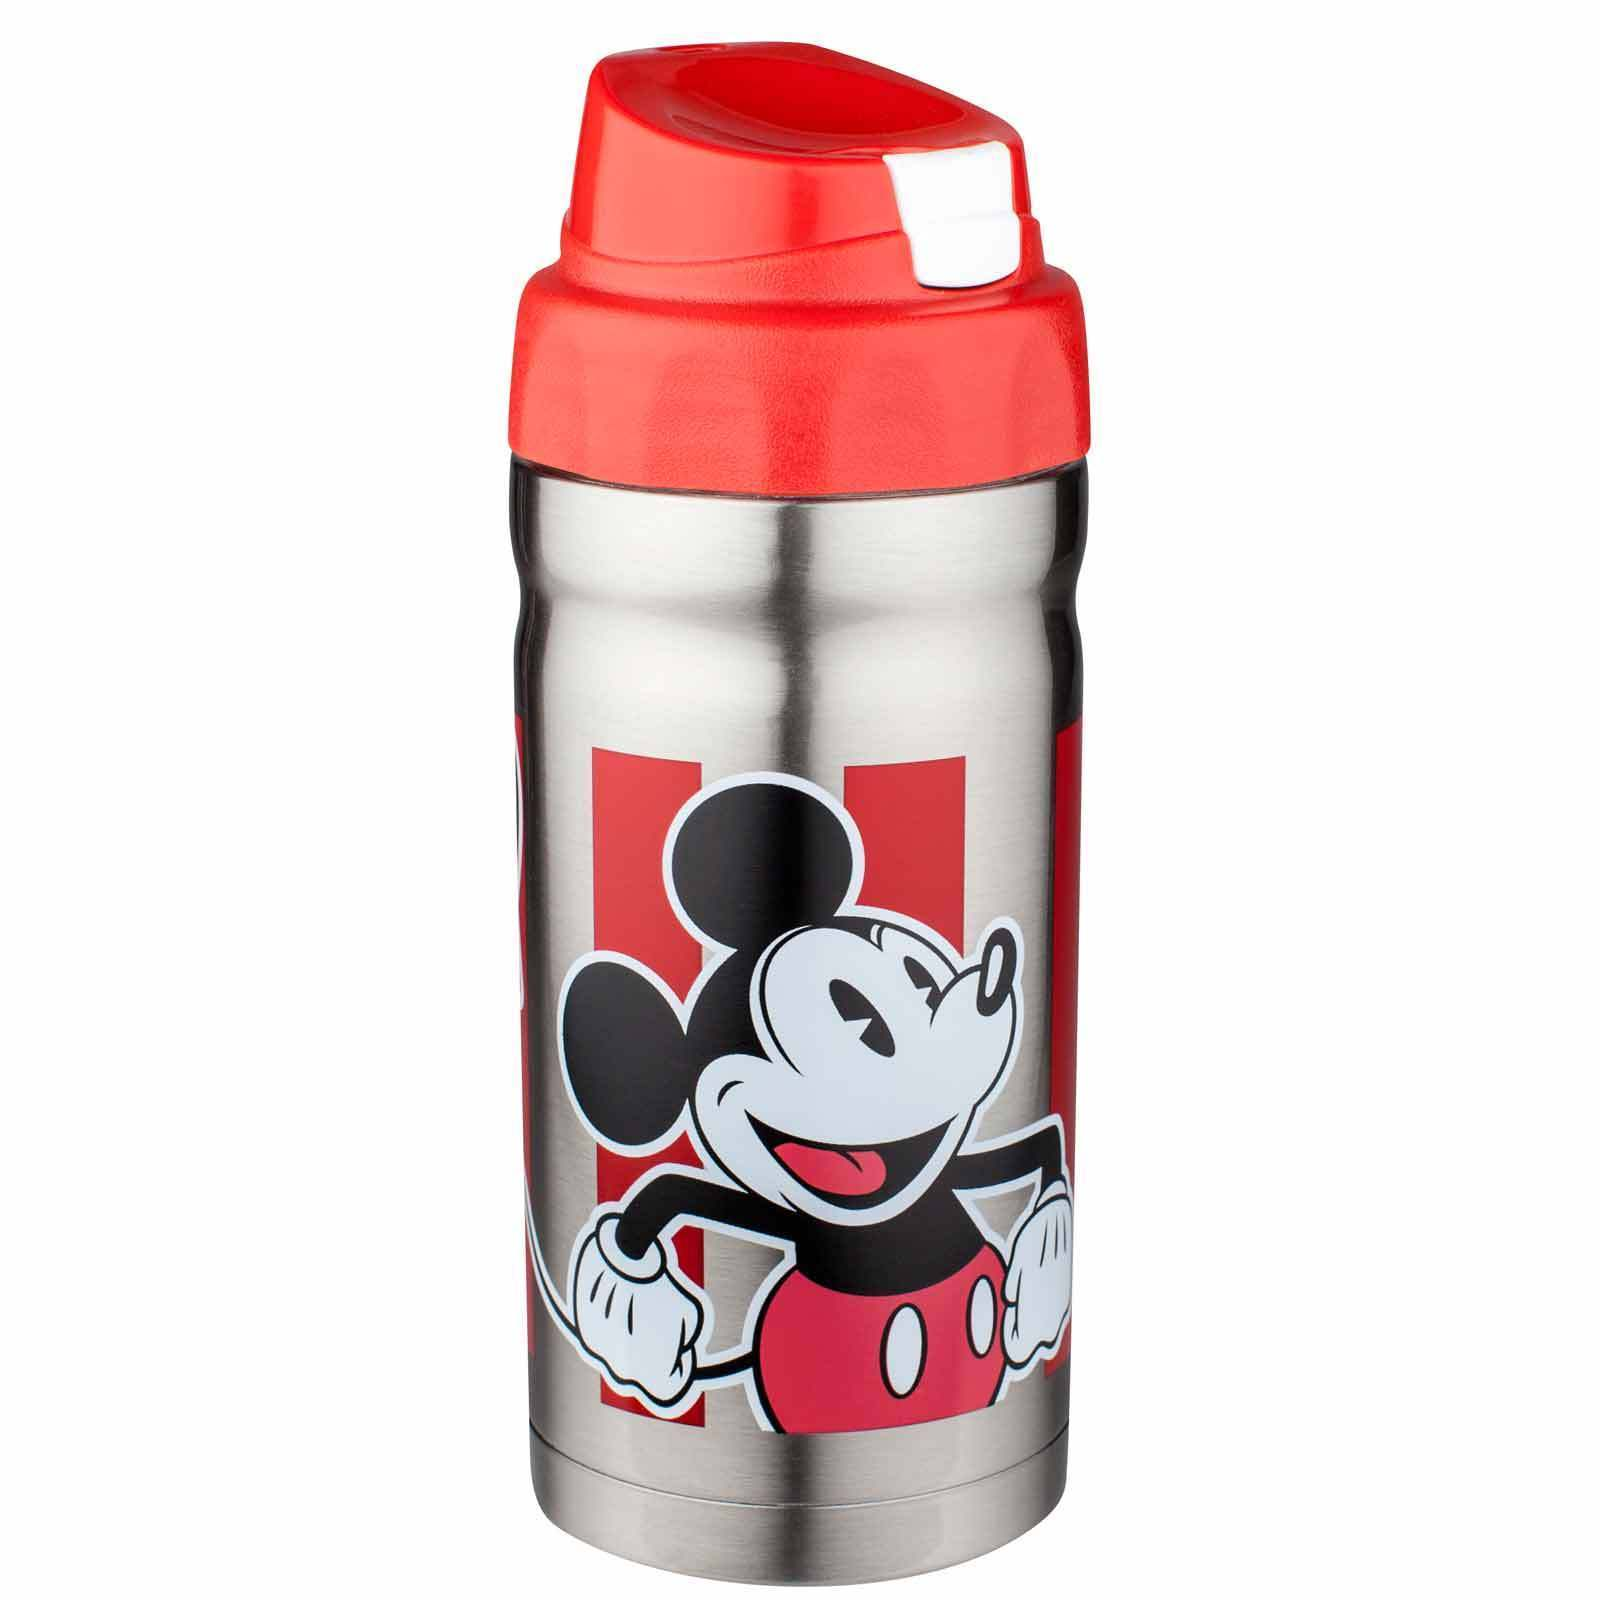 THERMOS-BEVERAGE BOTTLE. BRAND NEW! STAINLESS STEEL.MICKEY MOUSE - $15.00